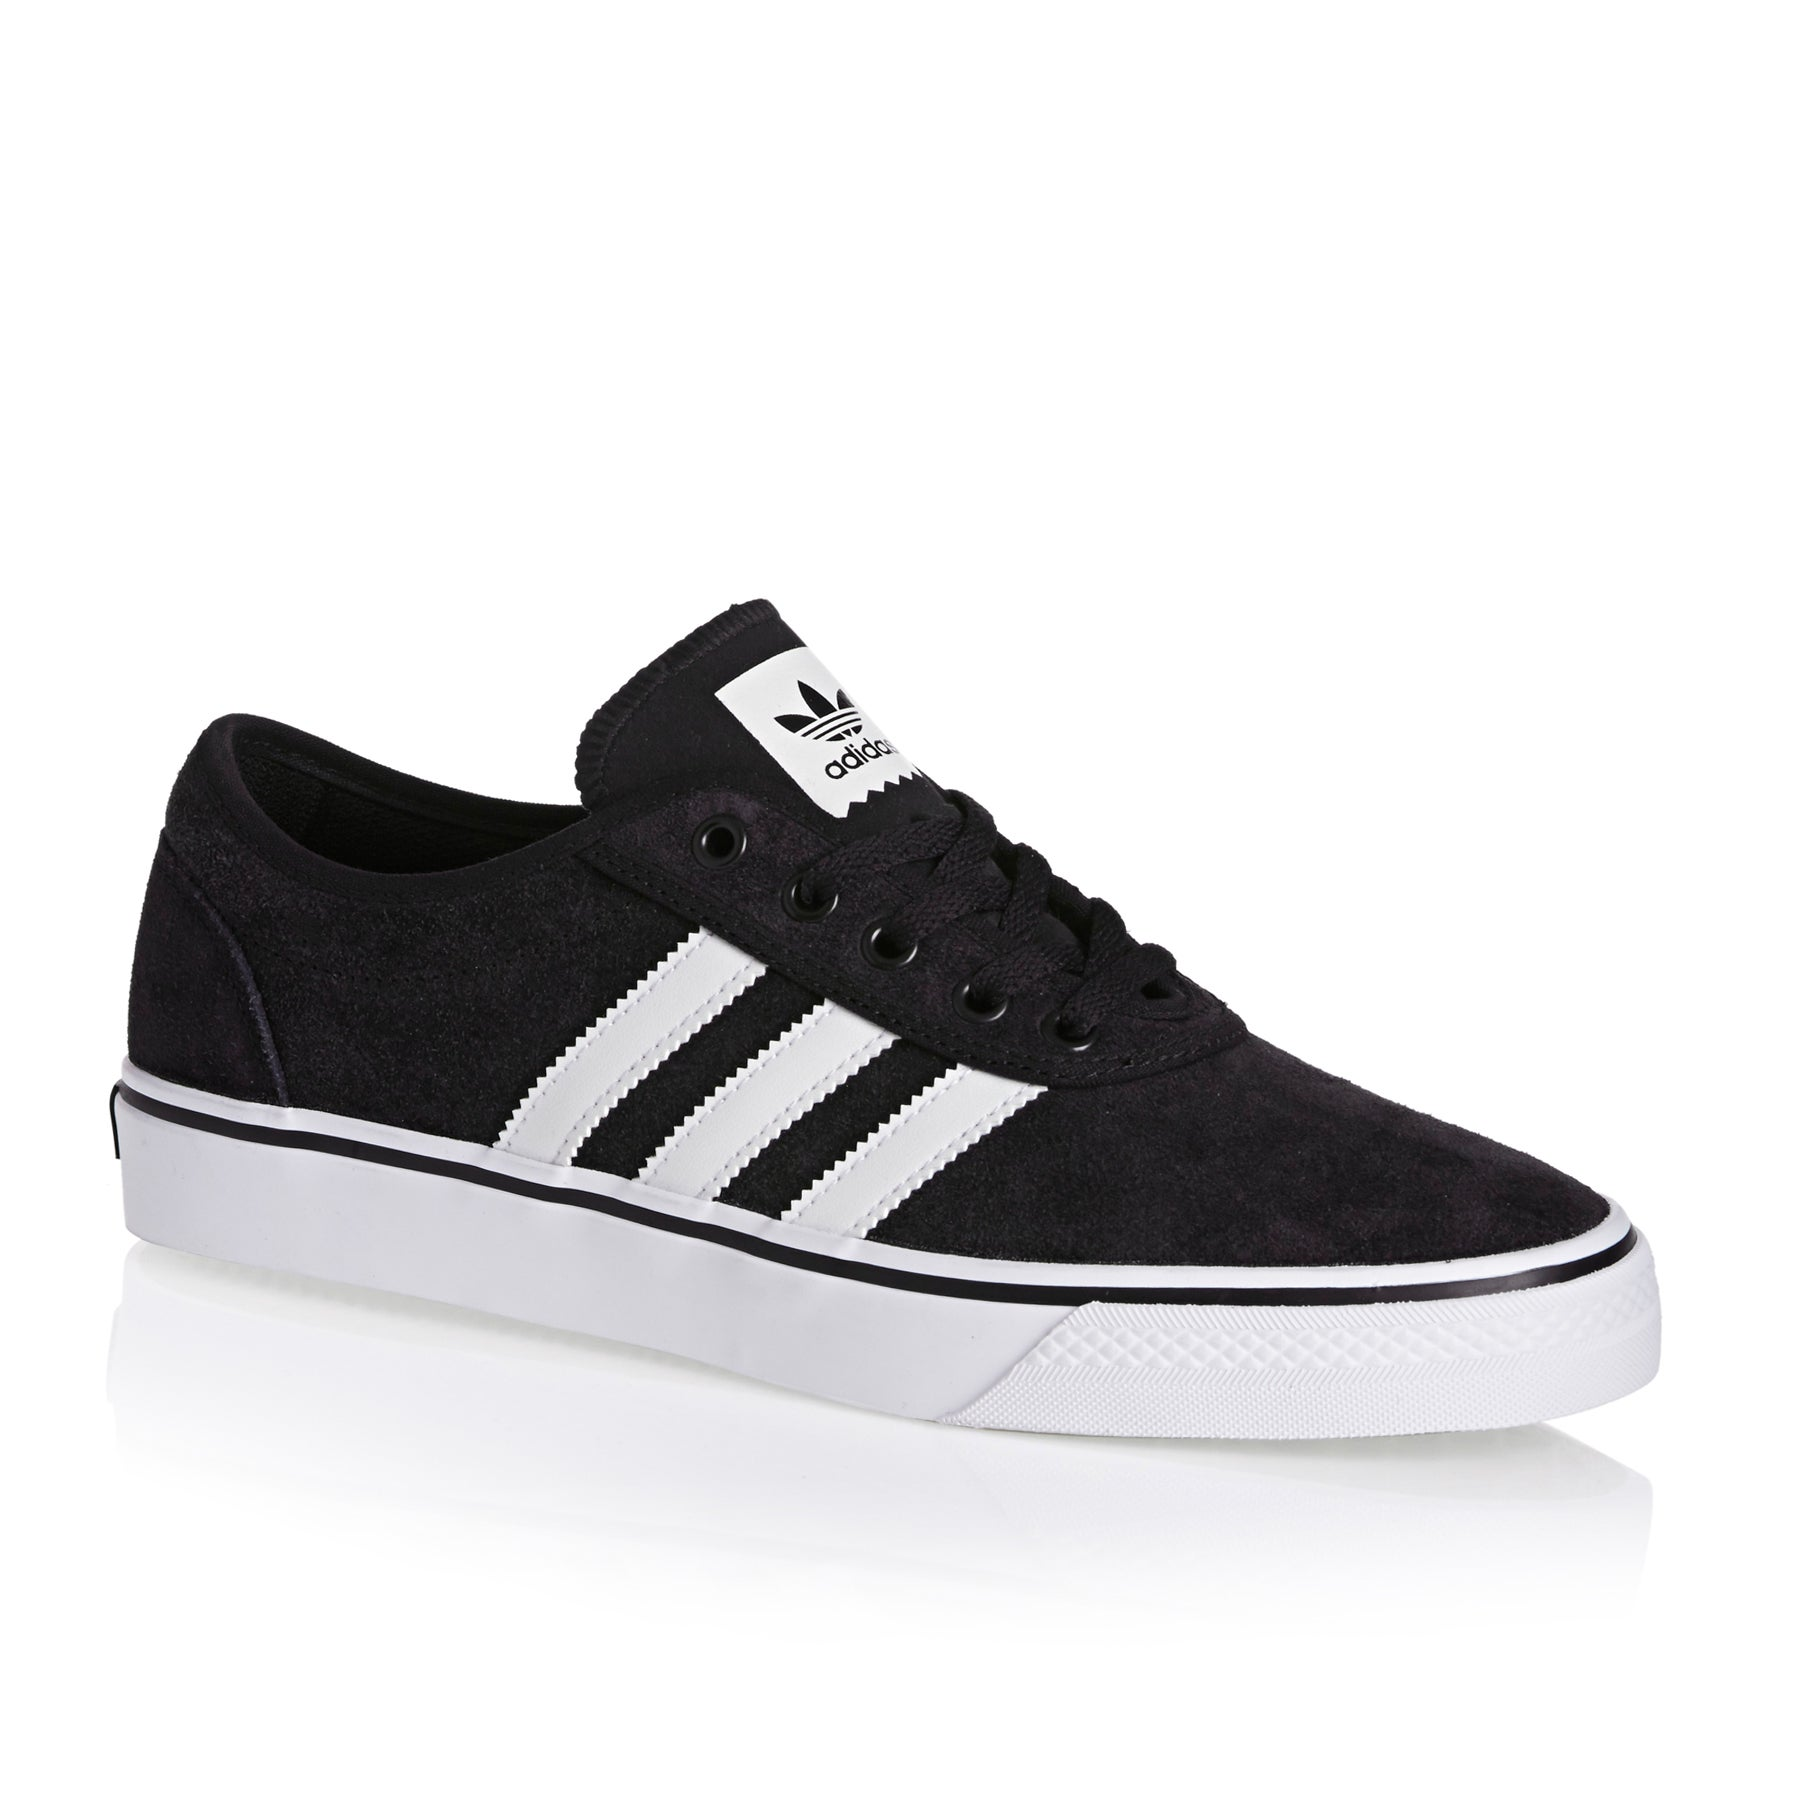 Adidas Originals Adiease Shoes - Core Black White